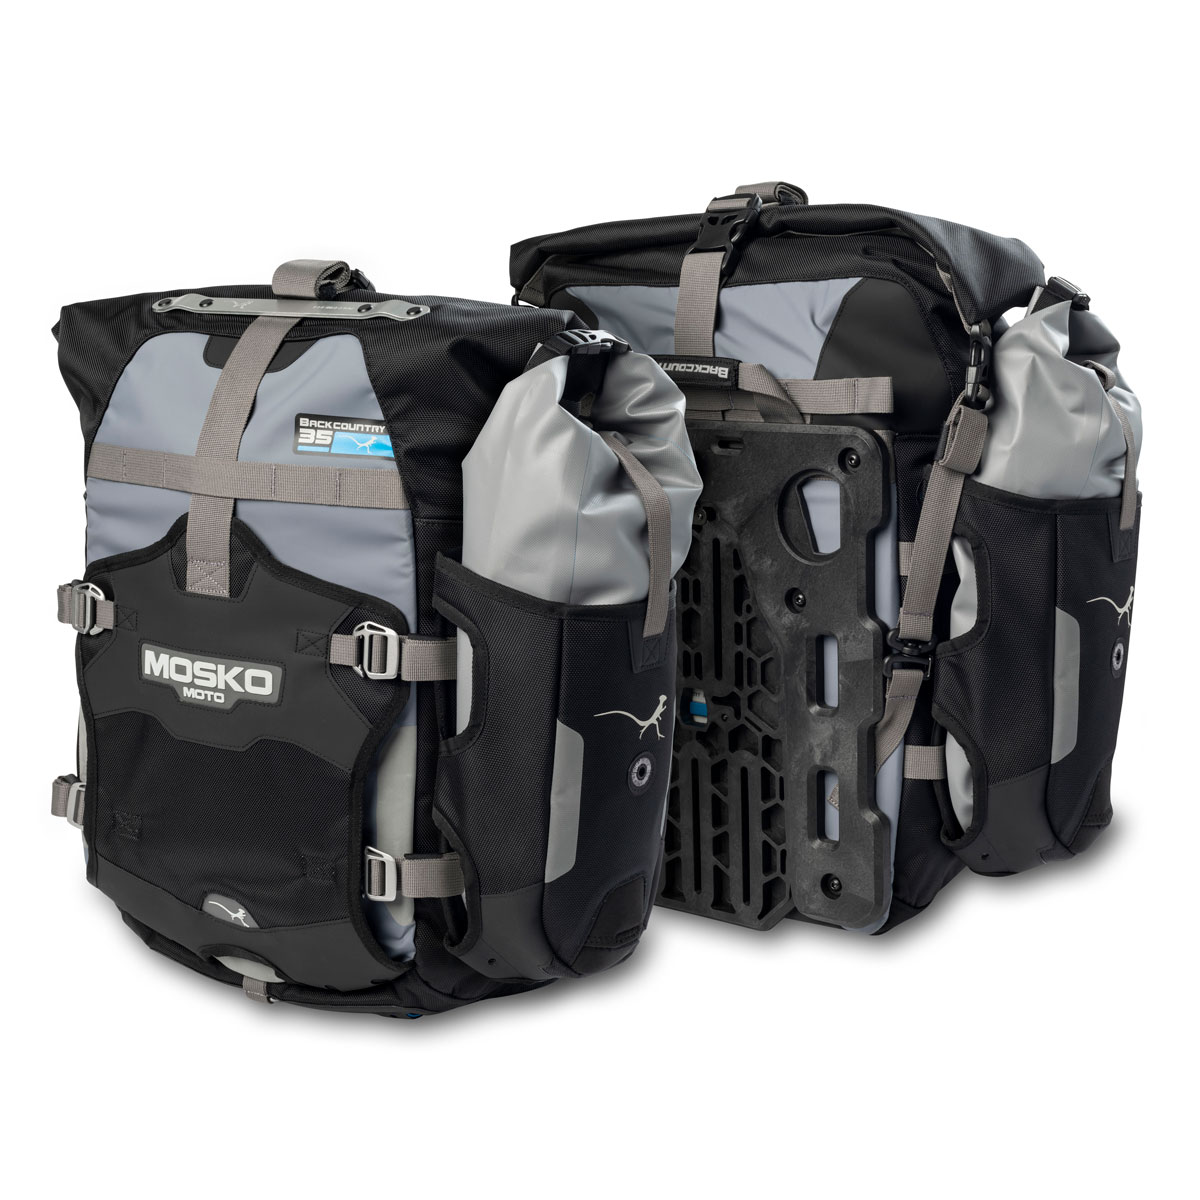 Mosko Moto Backcountry 35L